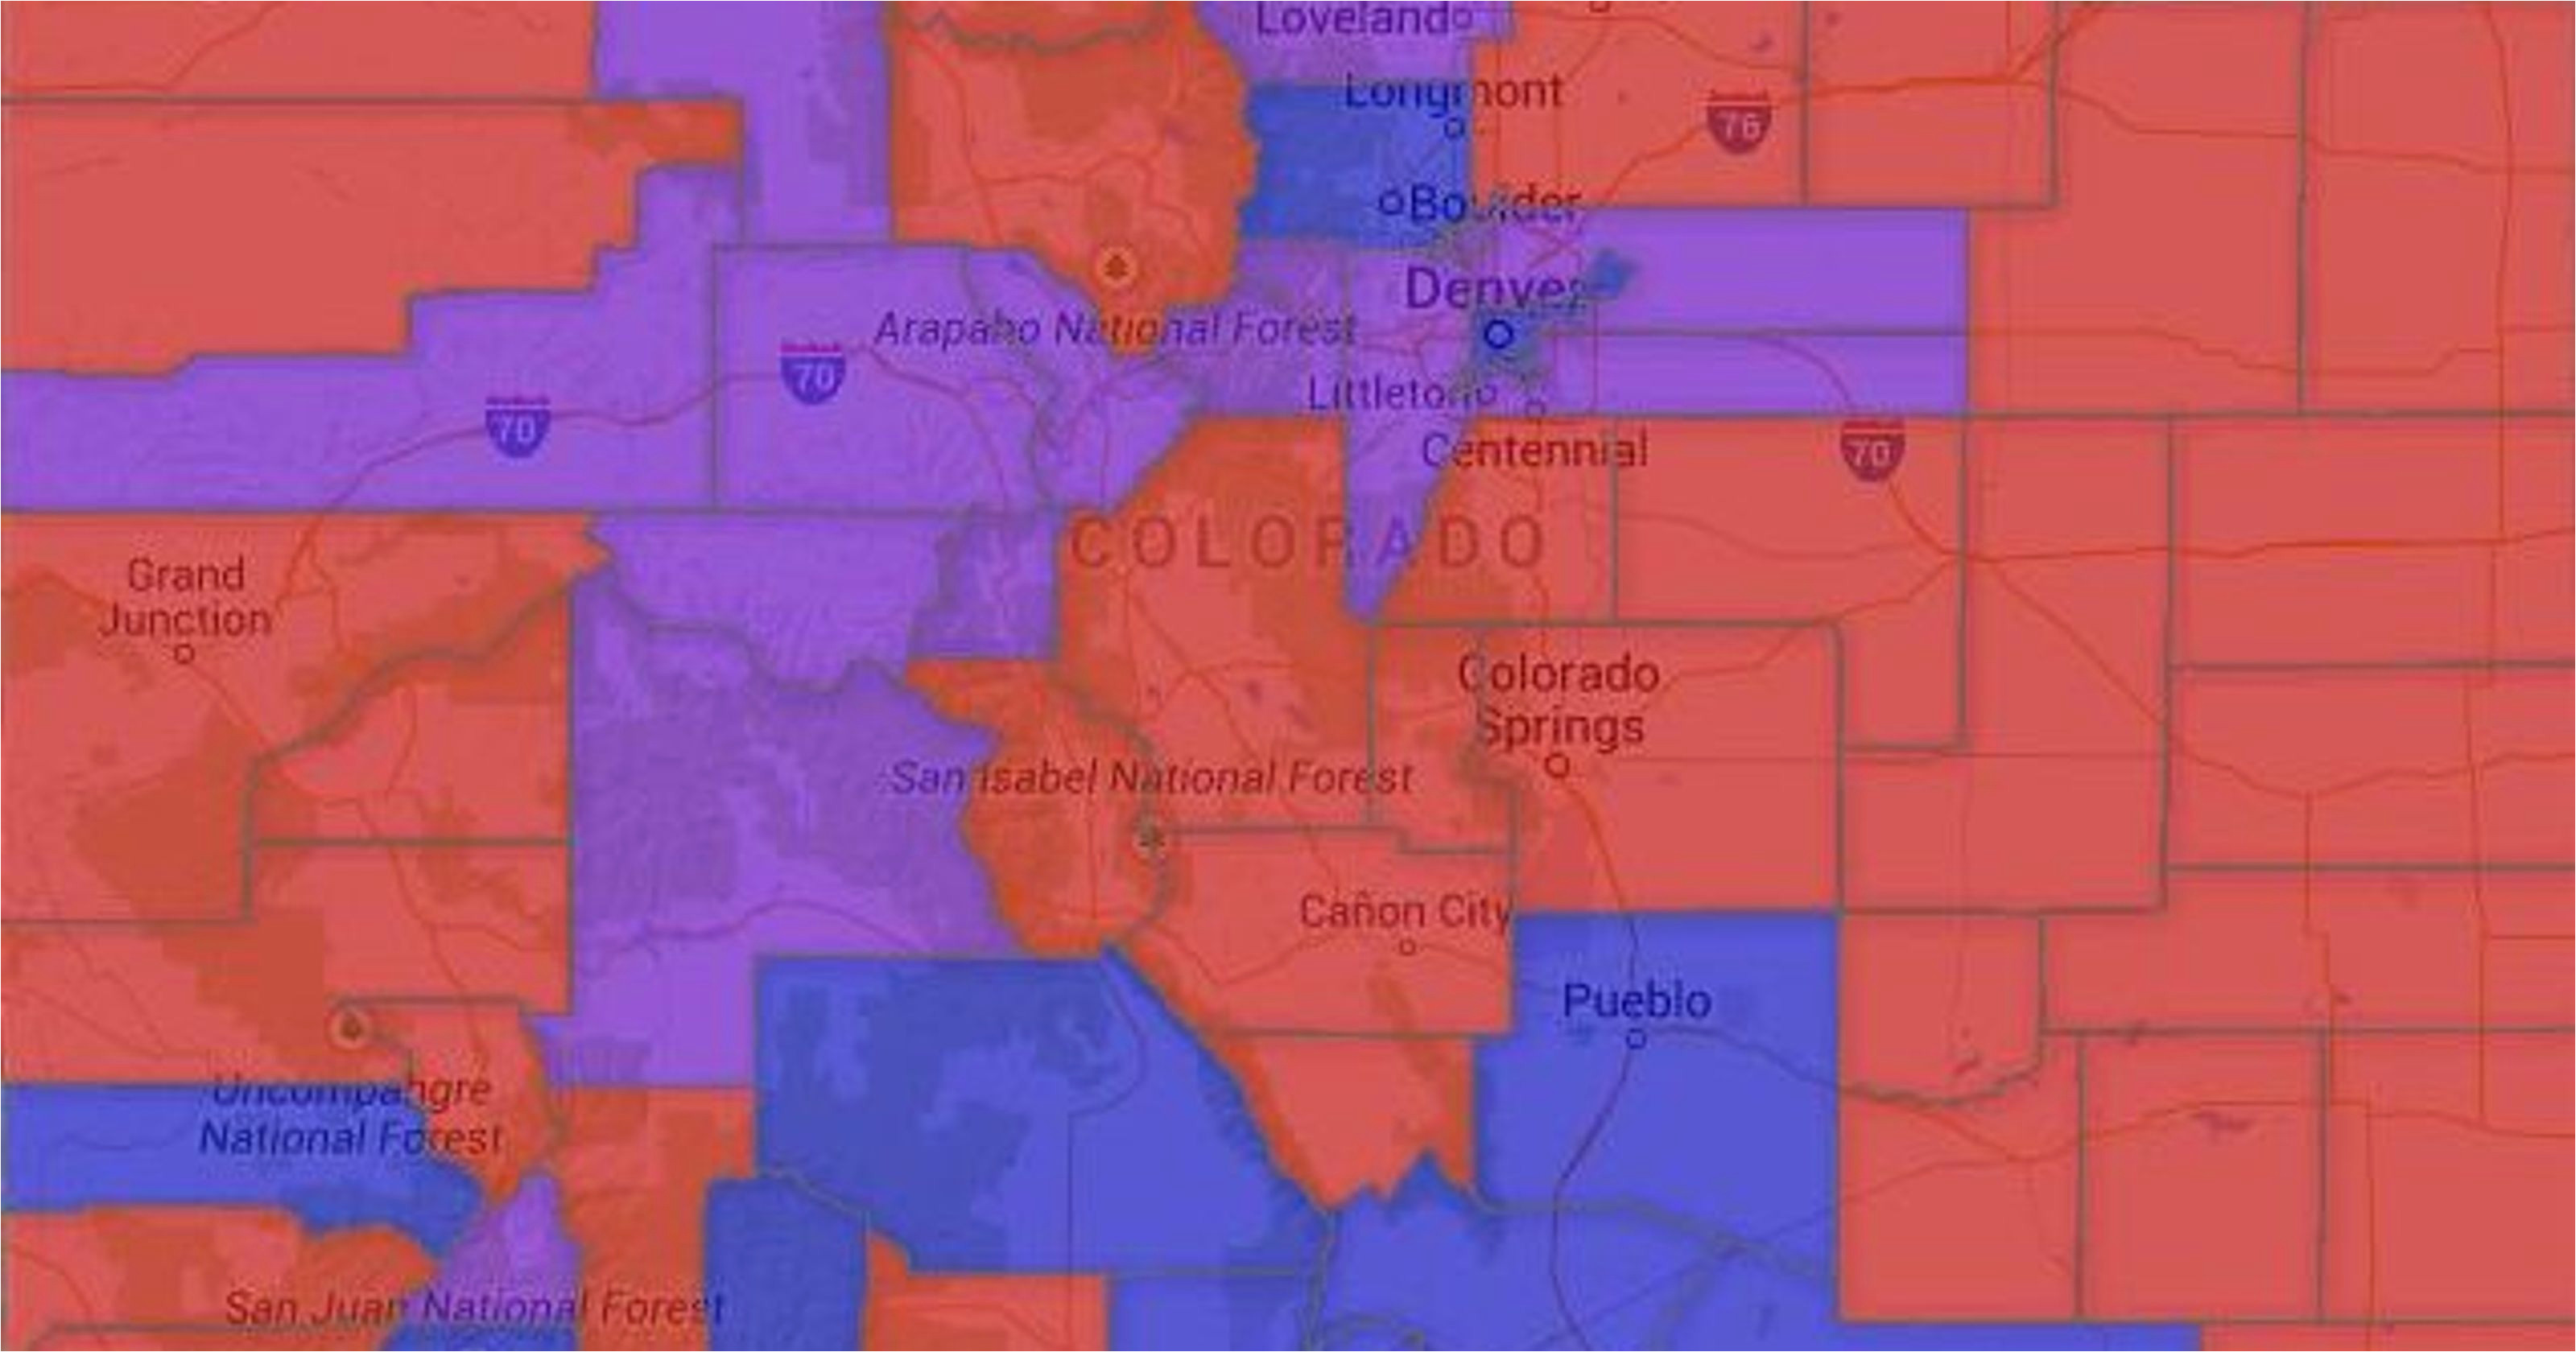 Map Of fort Morgan Colorado Map Colorado Voter Party Affiliation by County